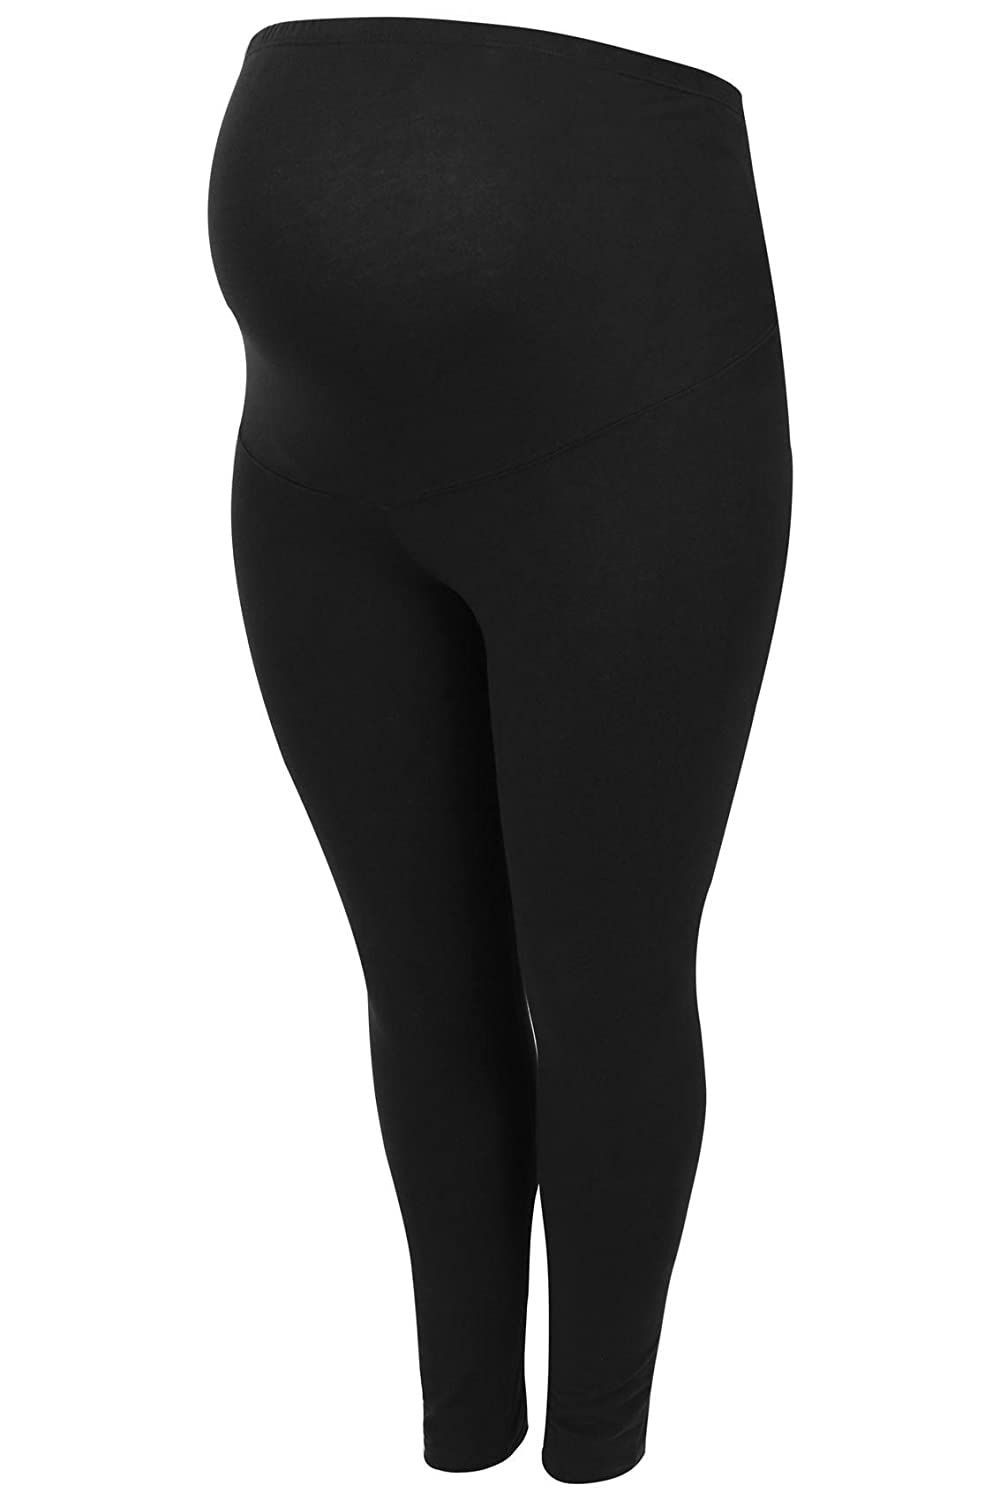 Women's Plus Size Bump It Up Maternity Soft Touch Leggings With Comfort Panel